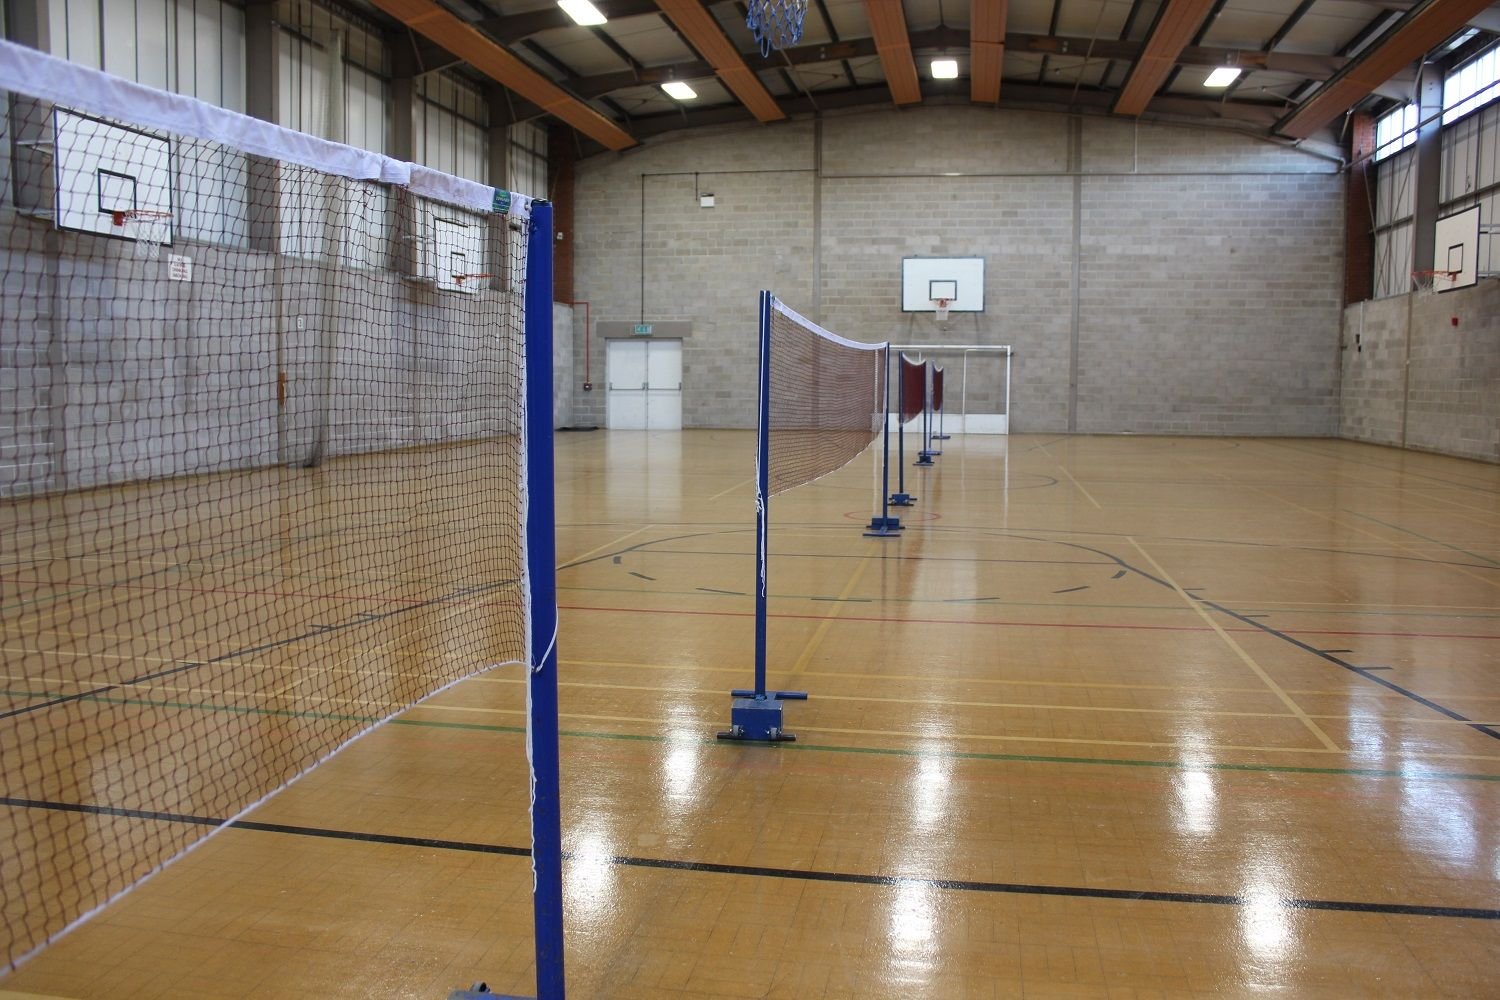 Sports Hall Badminton Courts